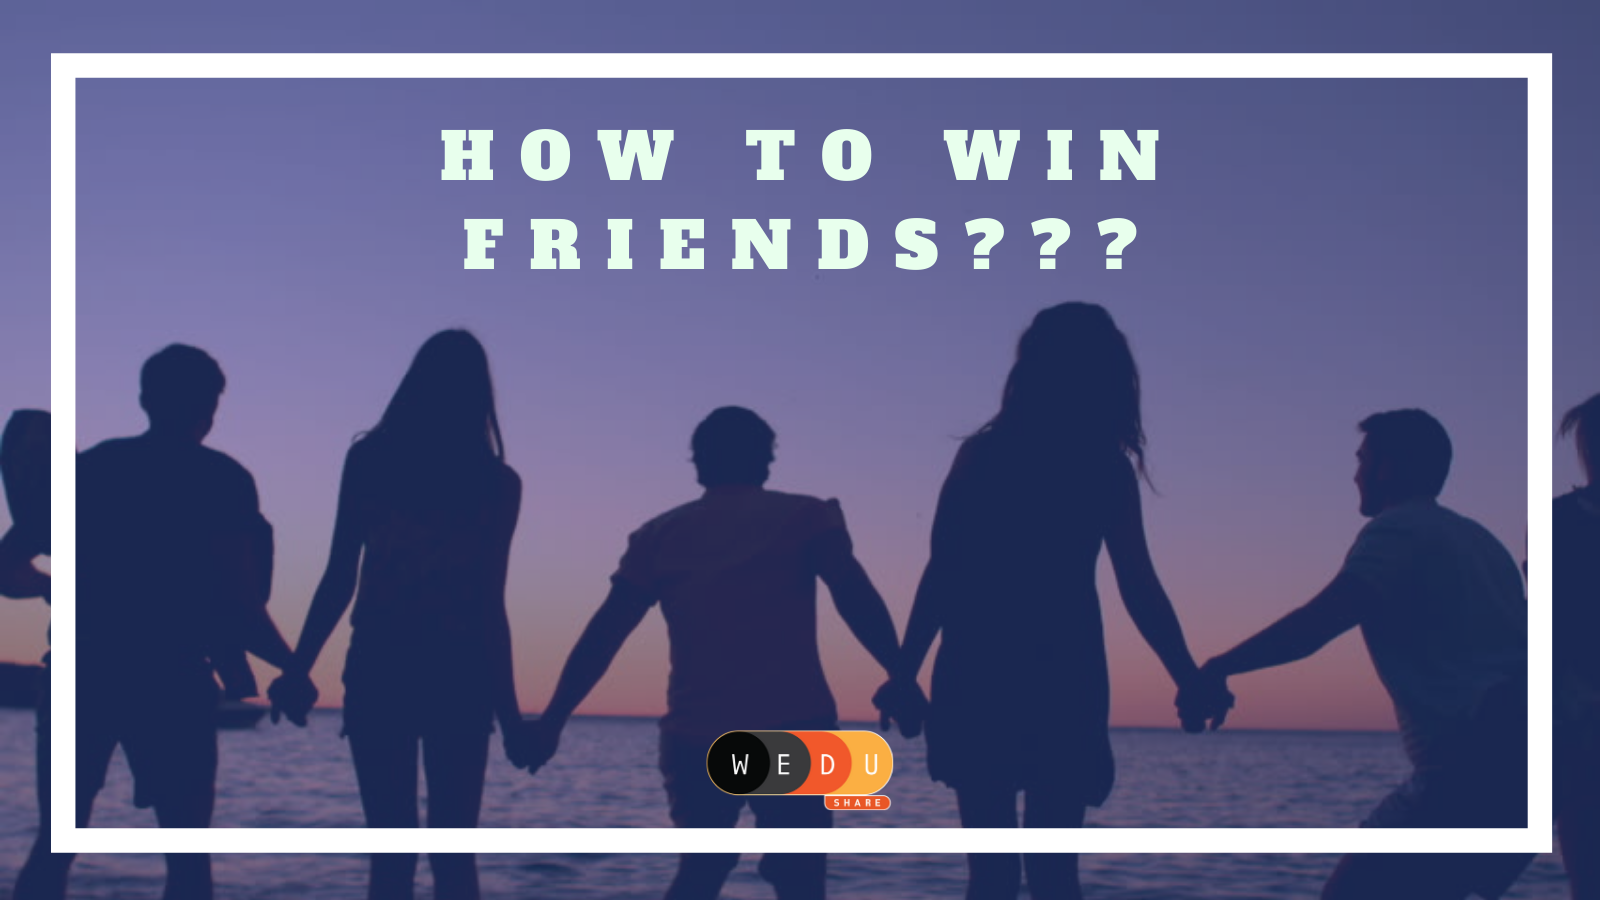 How To Win Friends???